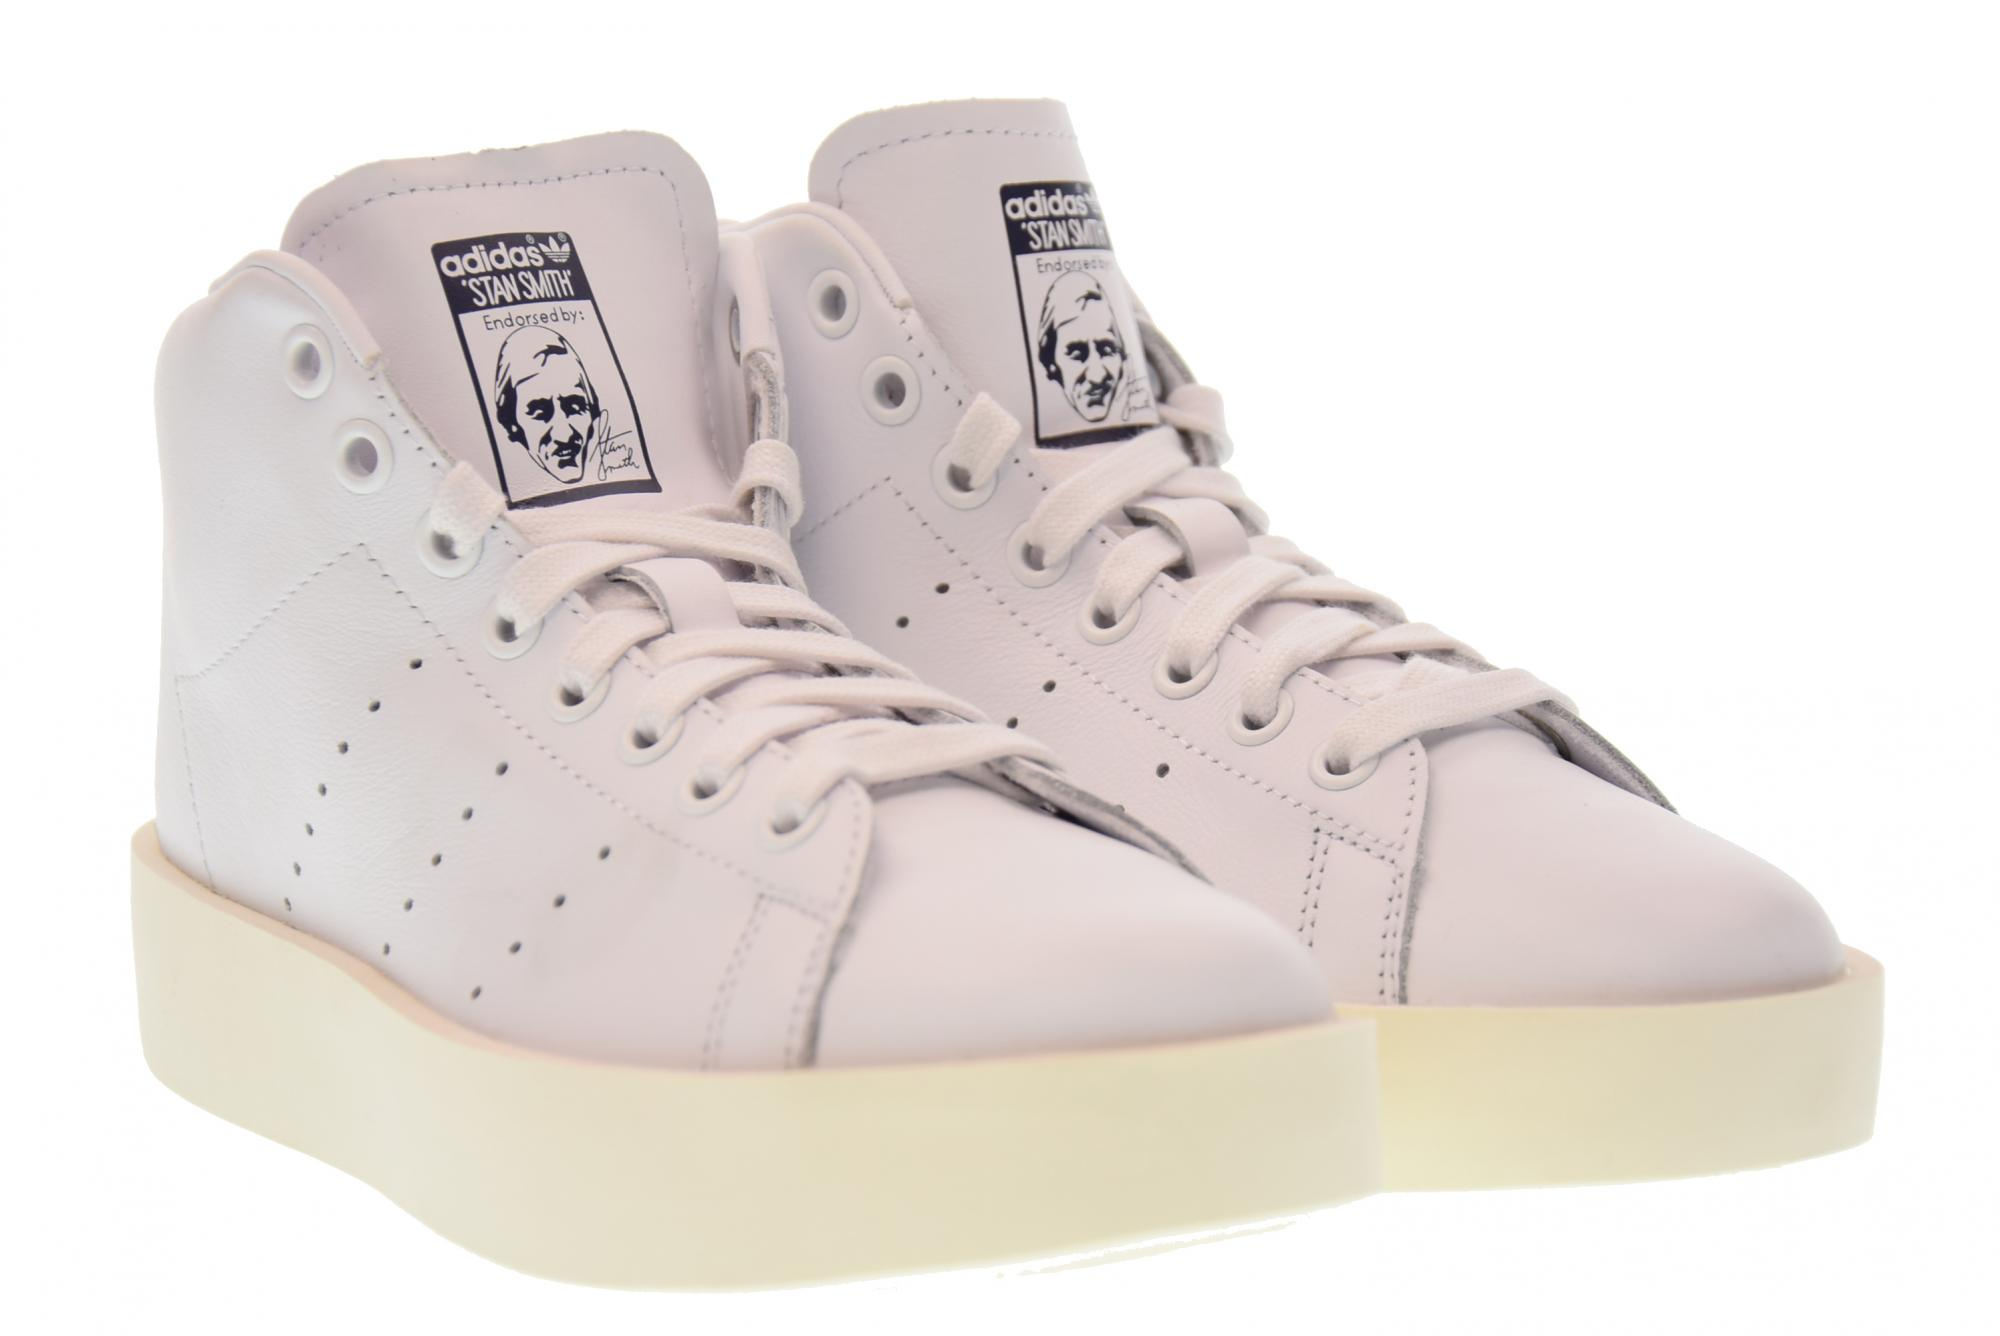 Adidas scarpe donna sneakers alte piattaforma BY9664 STAN SMITH BOLD MID A17